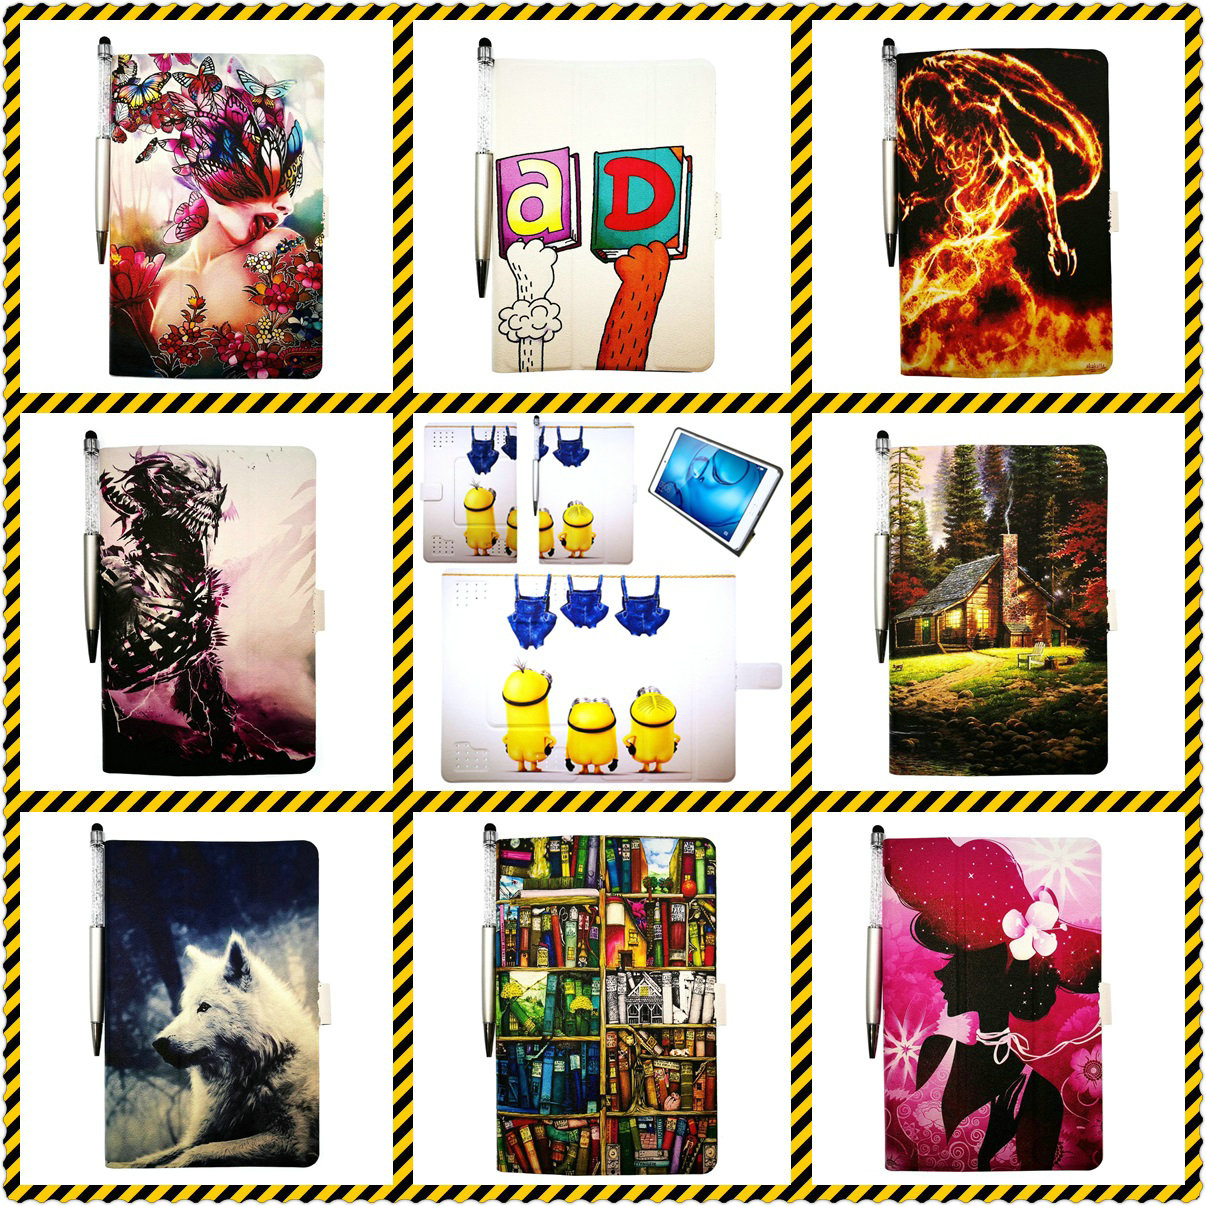 №Tablet Case для Goclever Tab Tab R83.3 Case Cover Couqe ...